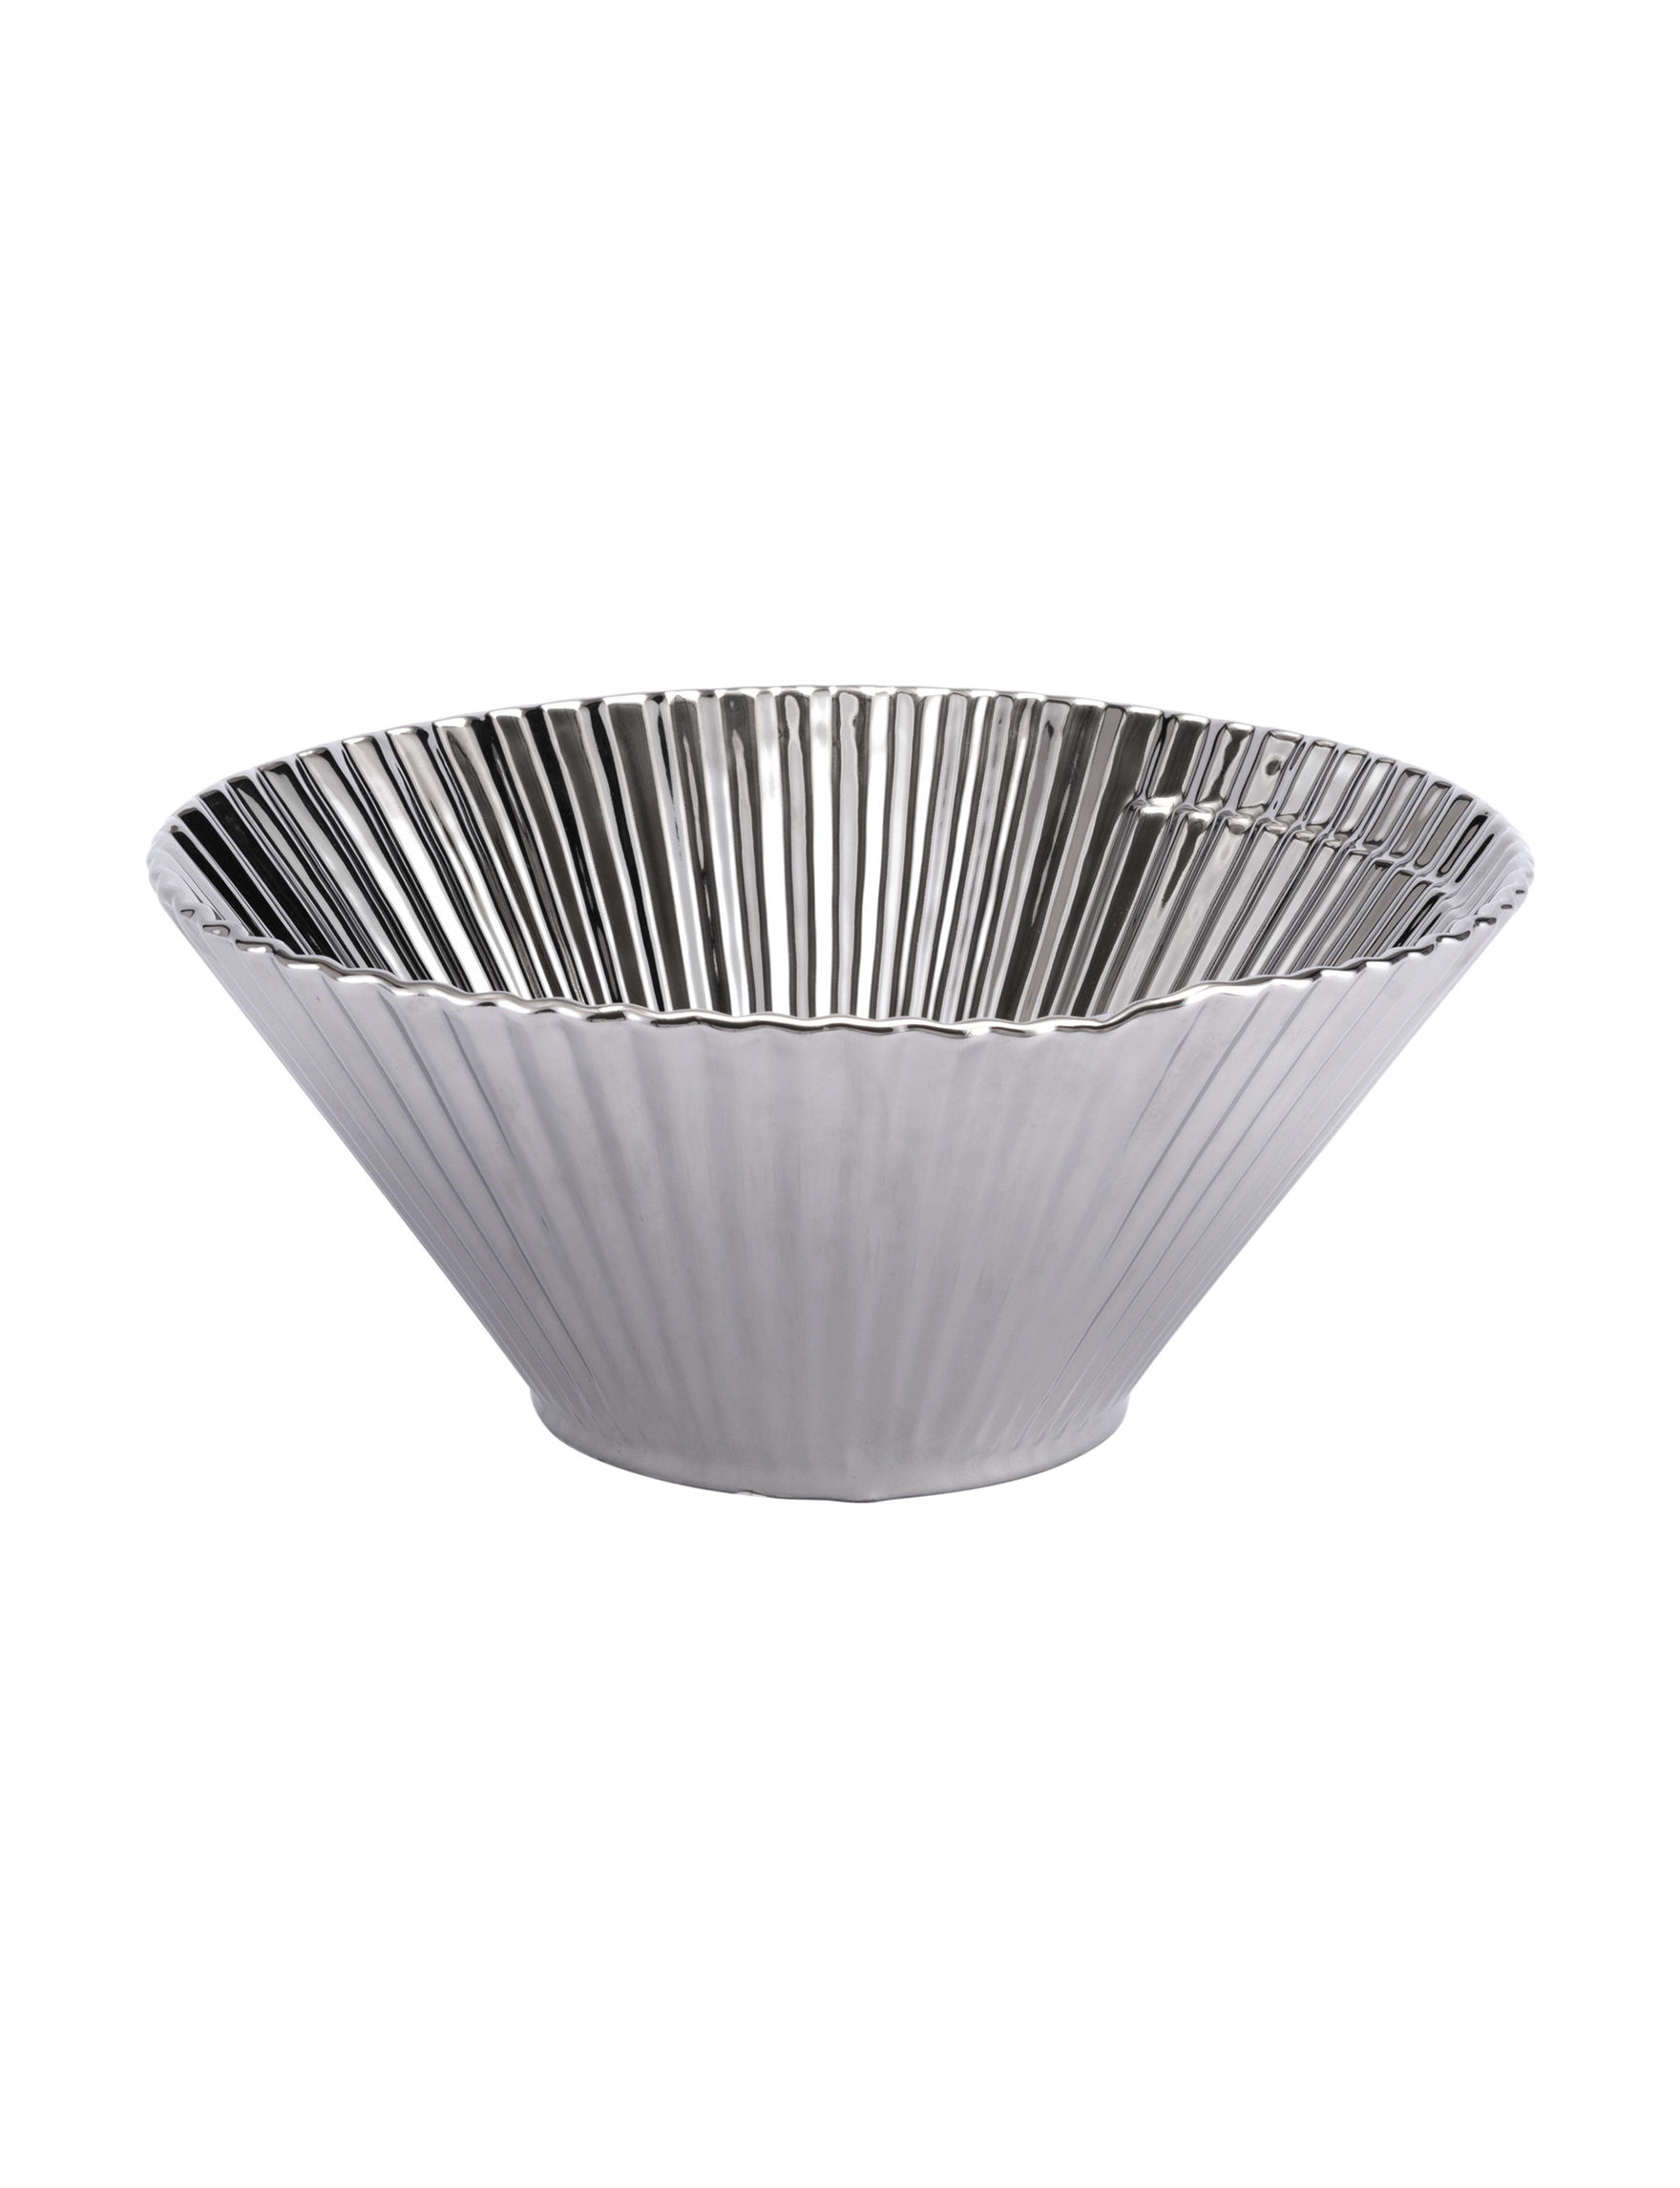 Zuo Modern Silver Vases & Decorative Bowls Home Accents